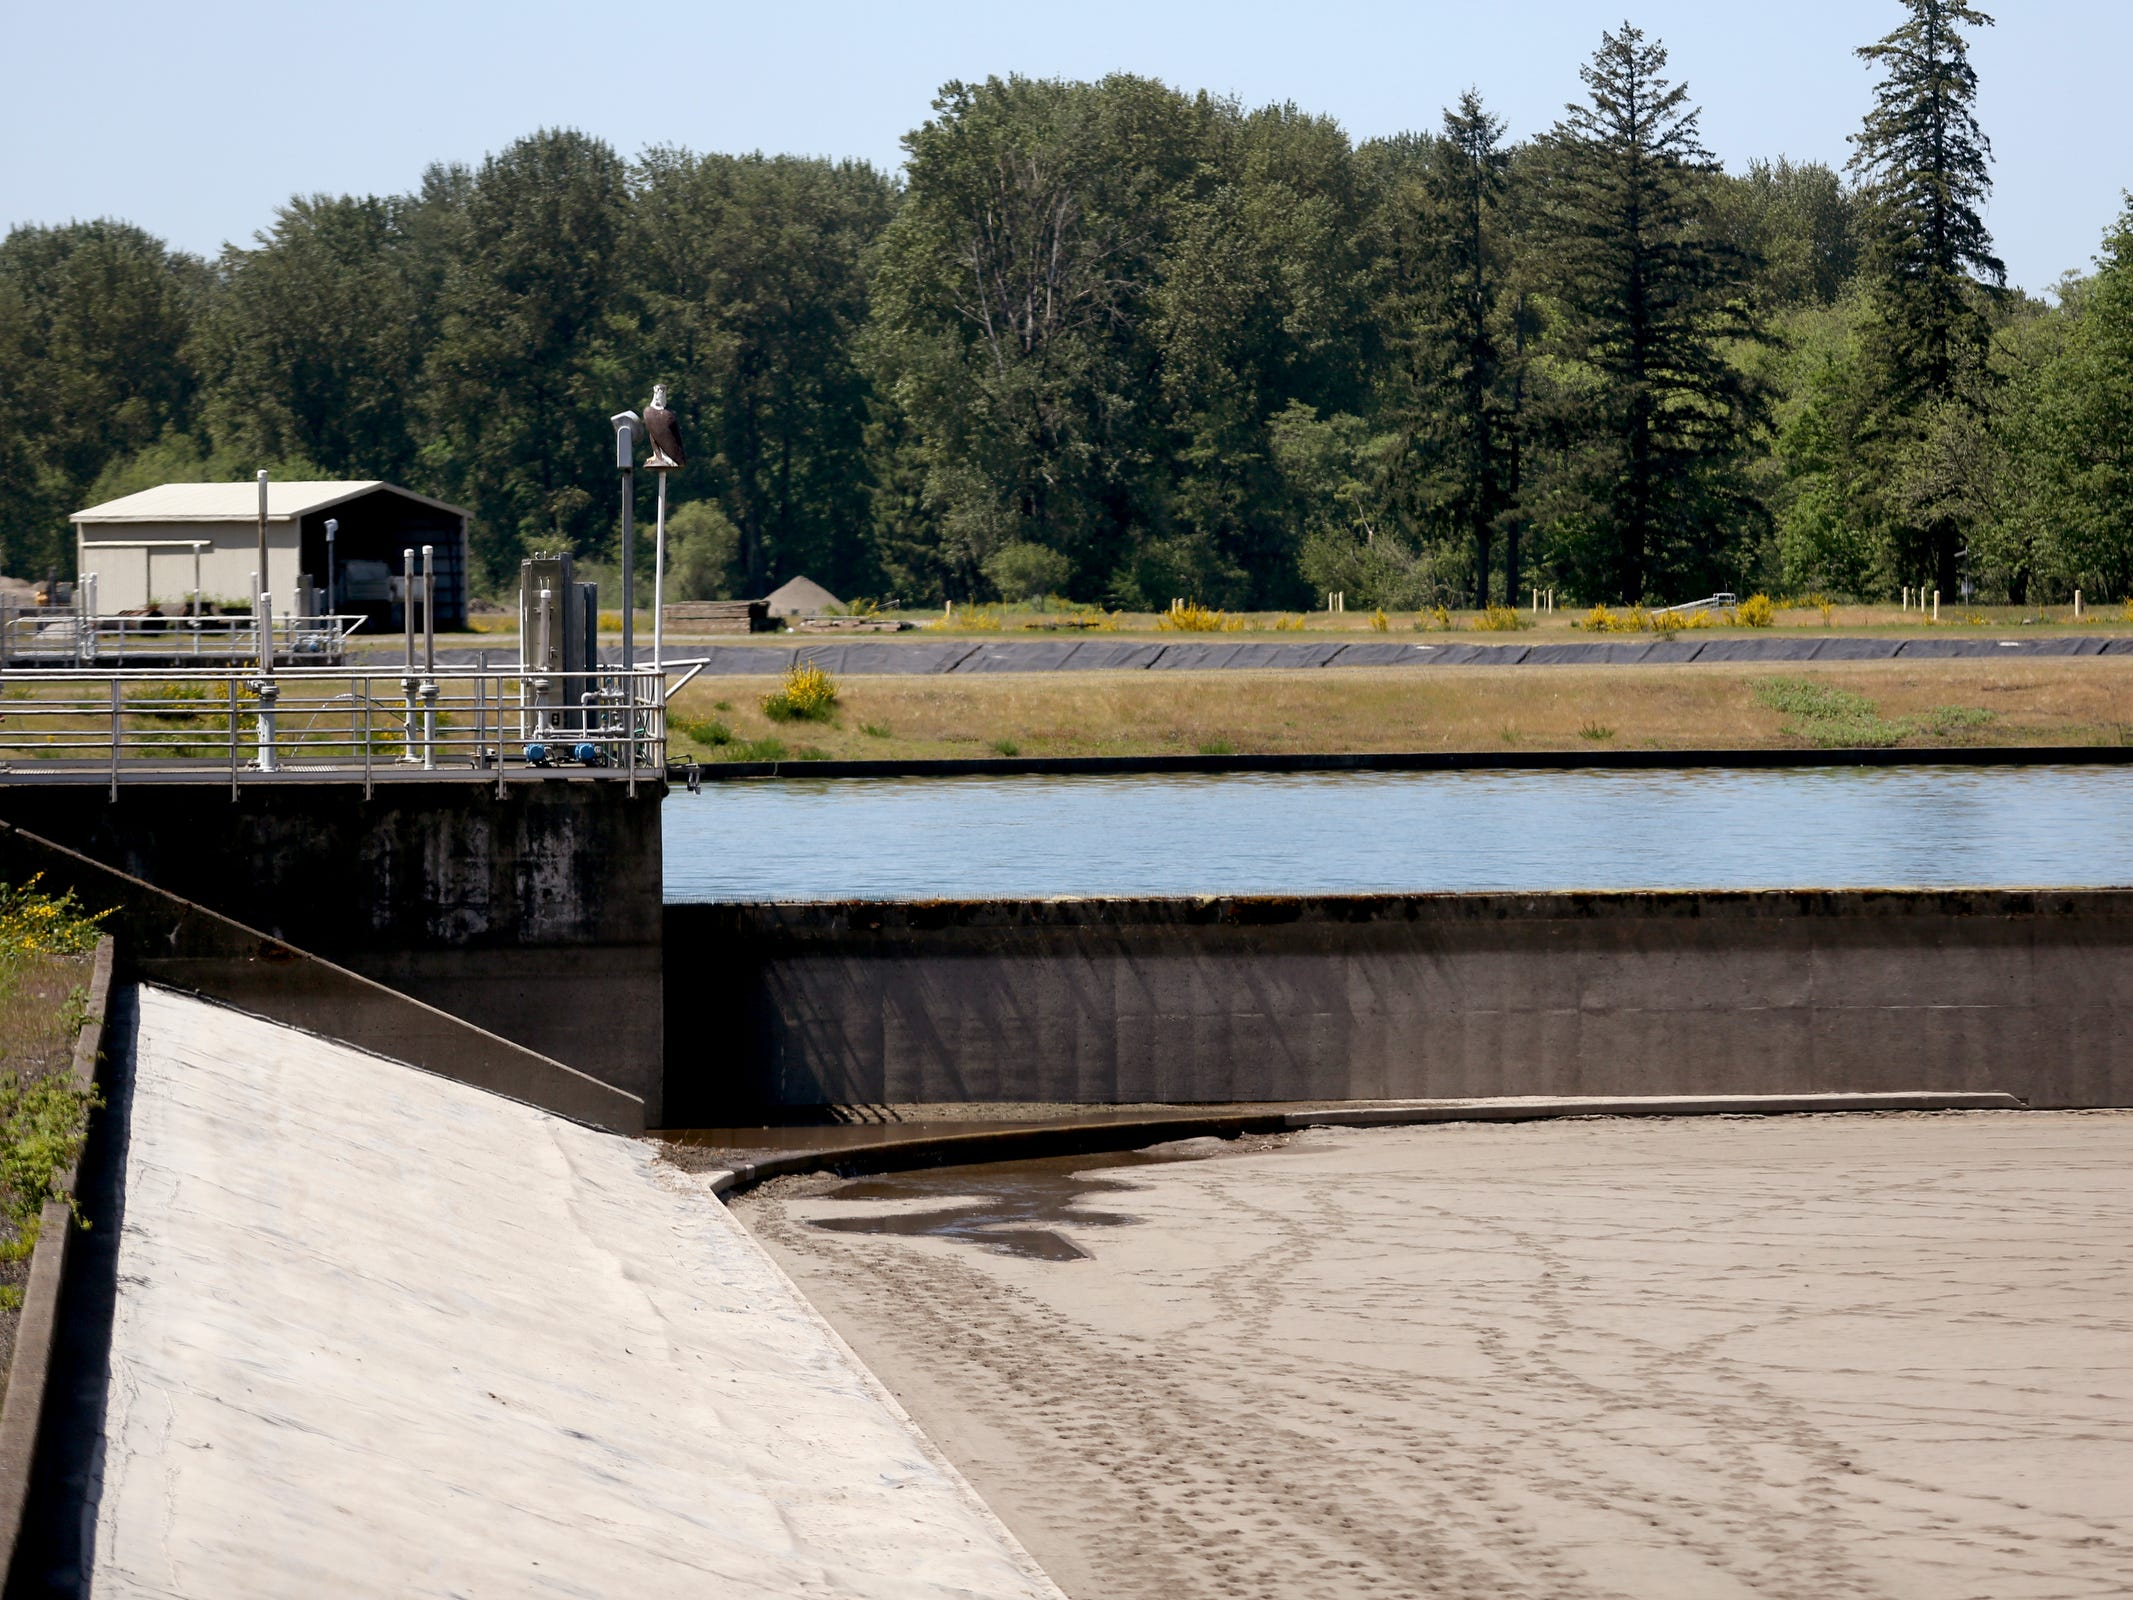 An empty water basic still has sand at the bottom from a filtration system treatment at the Geren Island Water Treatment Facility near Stayton on May 10, 2019. Salem officials are planning to spend more than $75 million to build defenses against toxic algae, in an effort to avoid a rerun of last year's drinking water crisis.